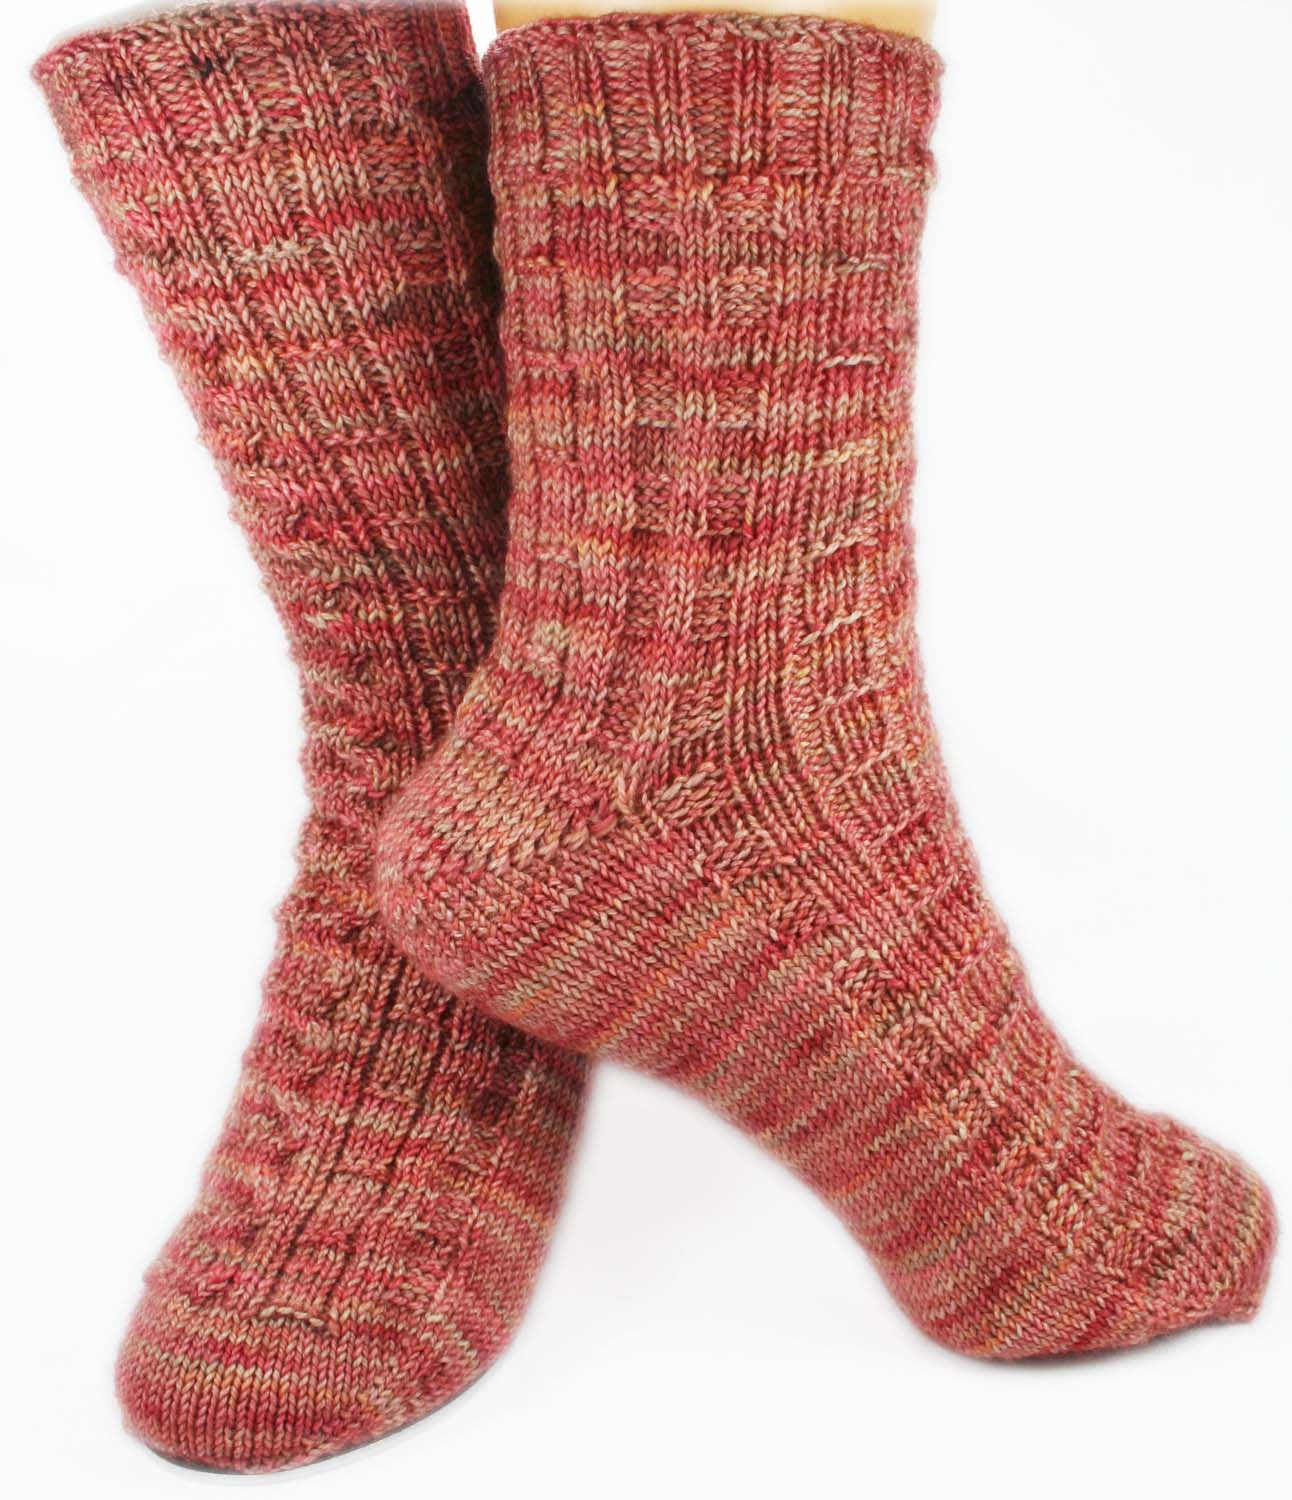 KNITTING PATTERN for BoardGame Socks - Charted Sock pattern digital download